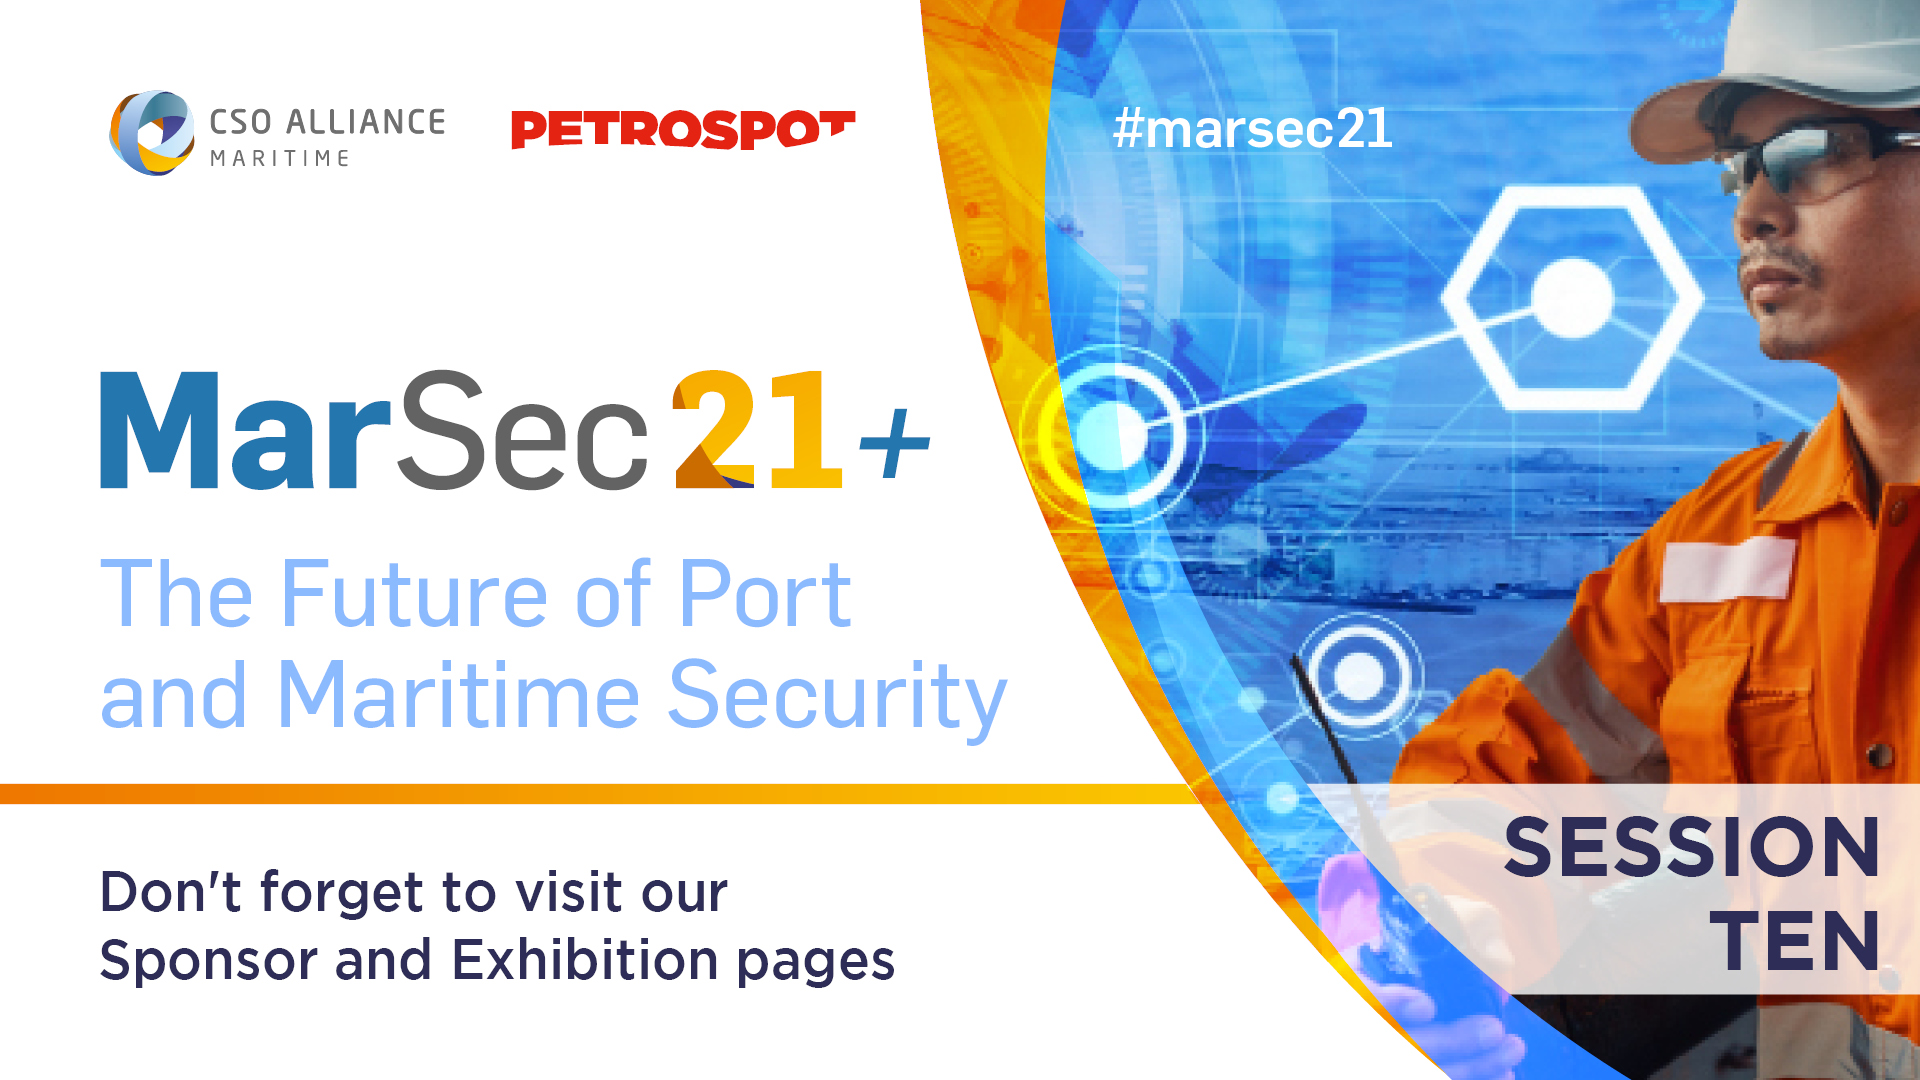 MarSec 21+ Session 10: What can we learn from other industries?